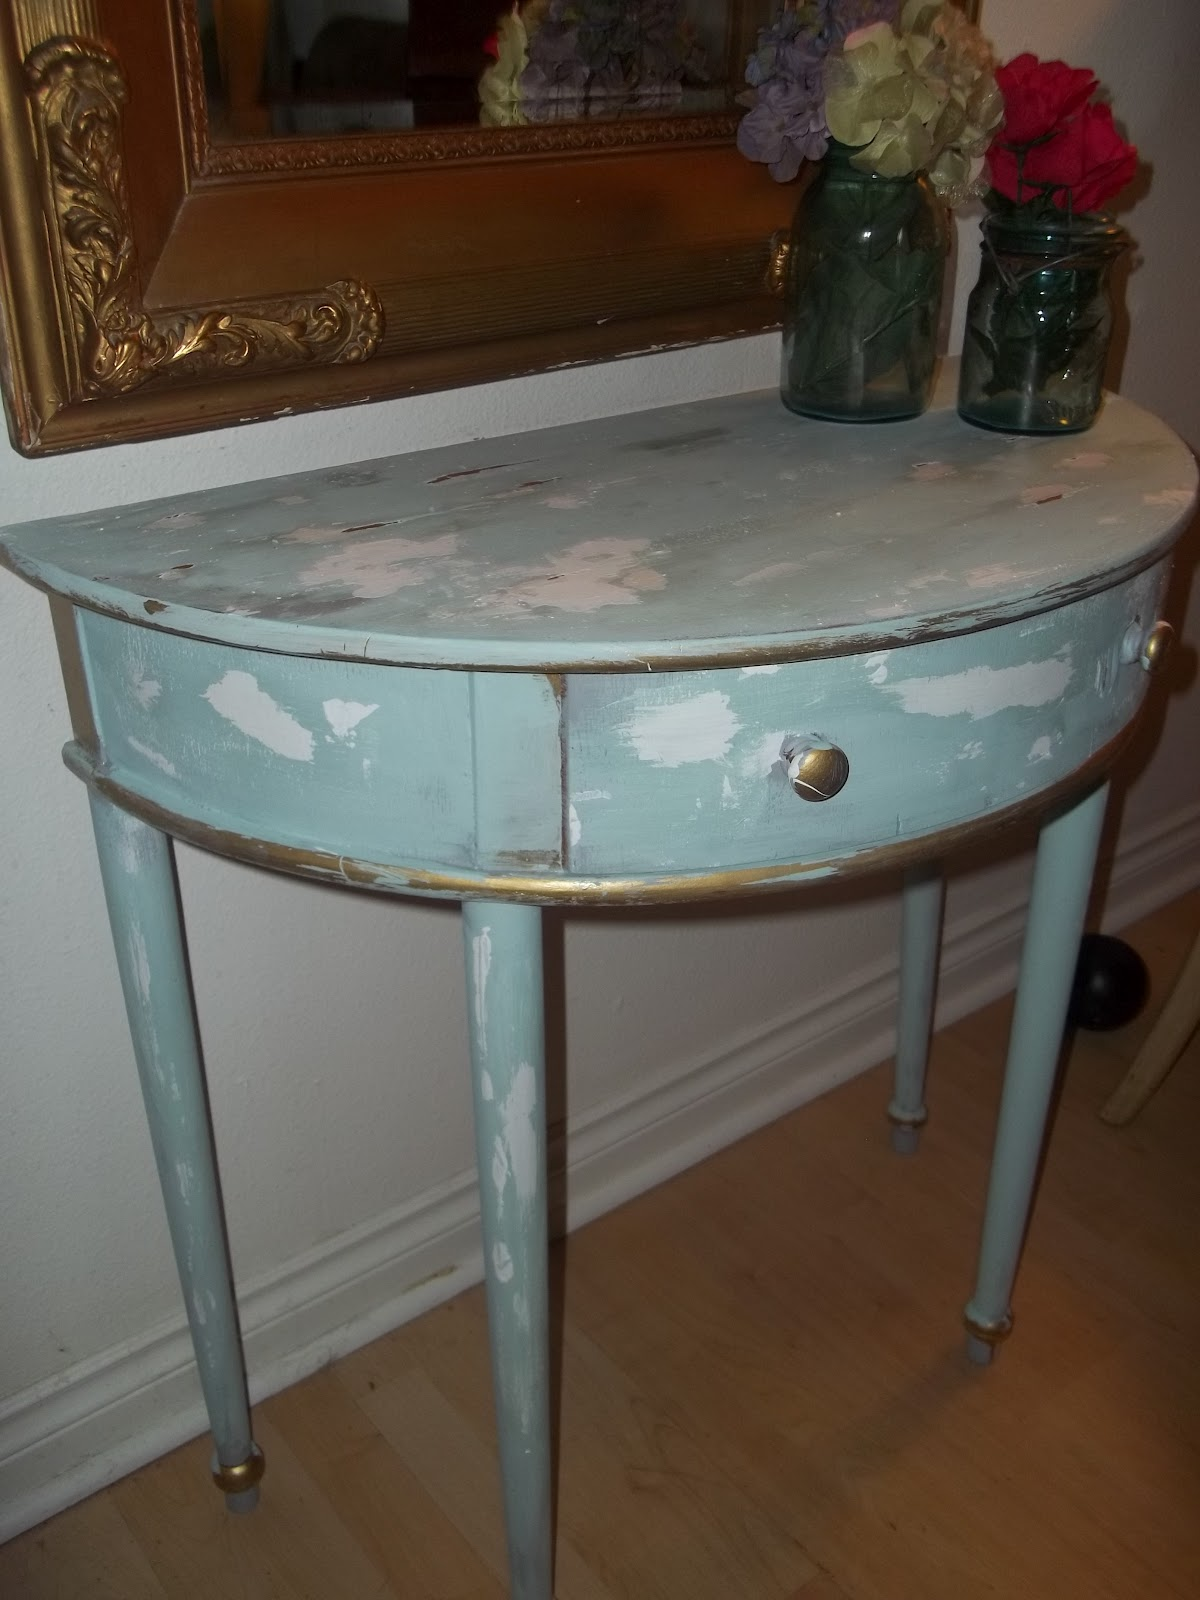 Adorable Shabby Chic Half Moon Entry Table - $35 (SOLD) | Thrifty ...